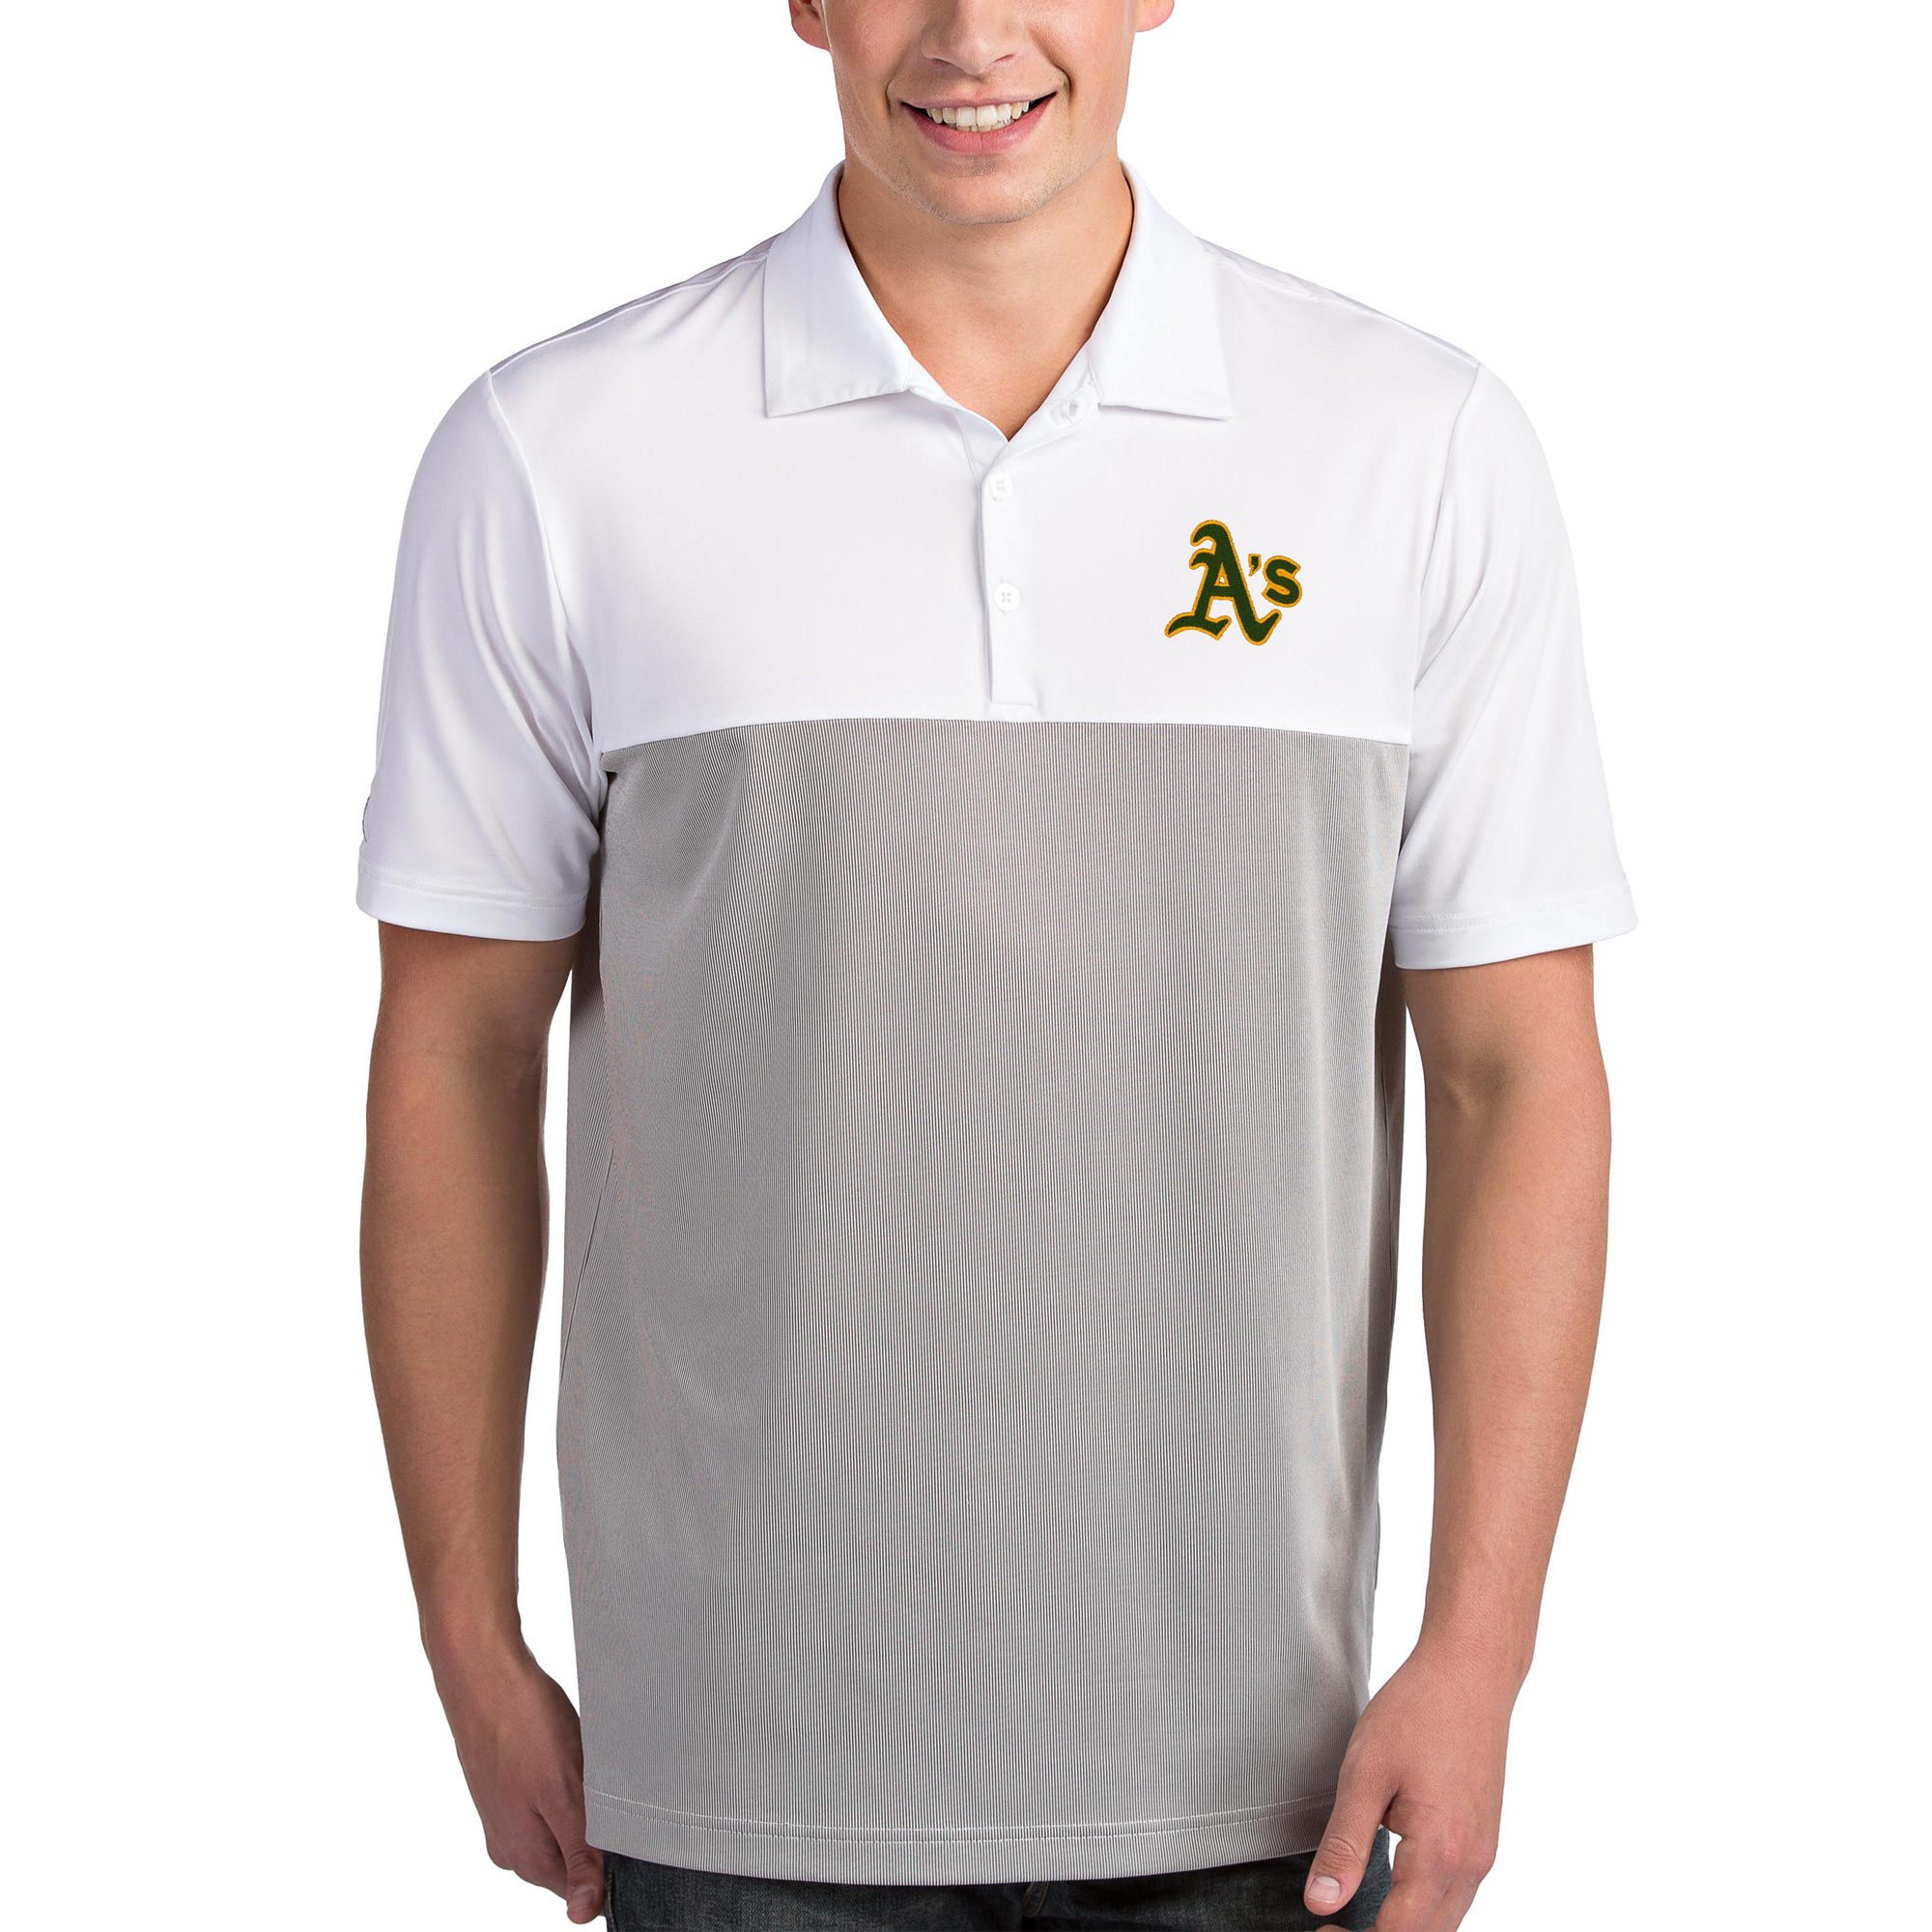 Oakland Athletics Antigua Venture Polo - White/Gray